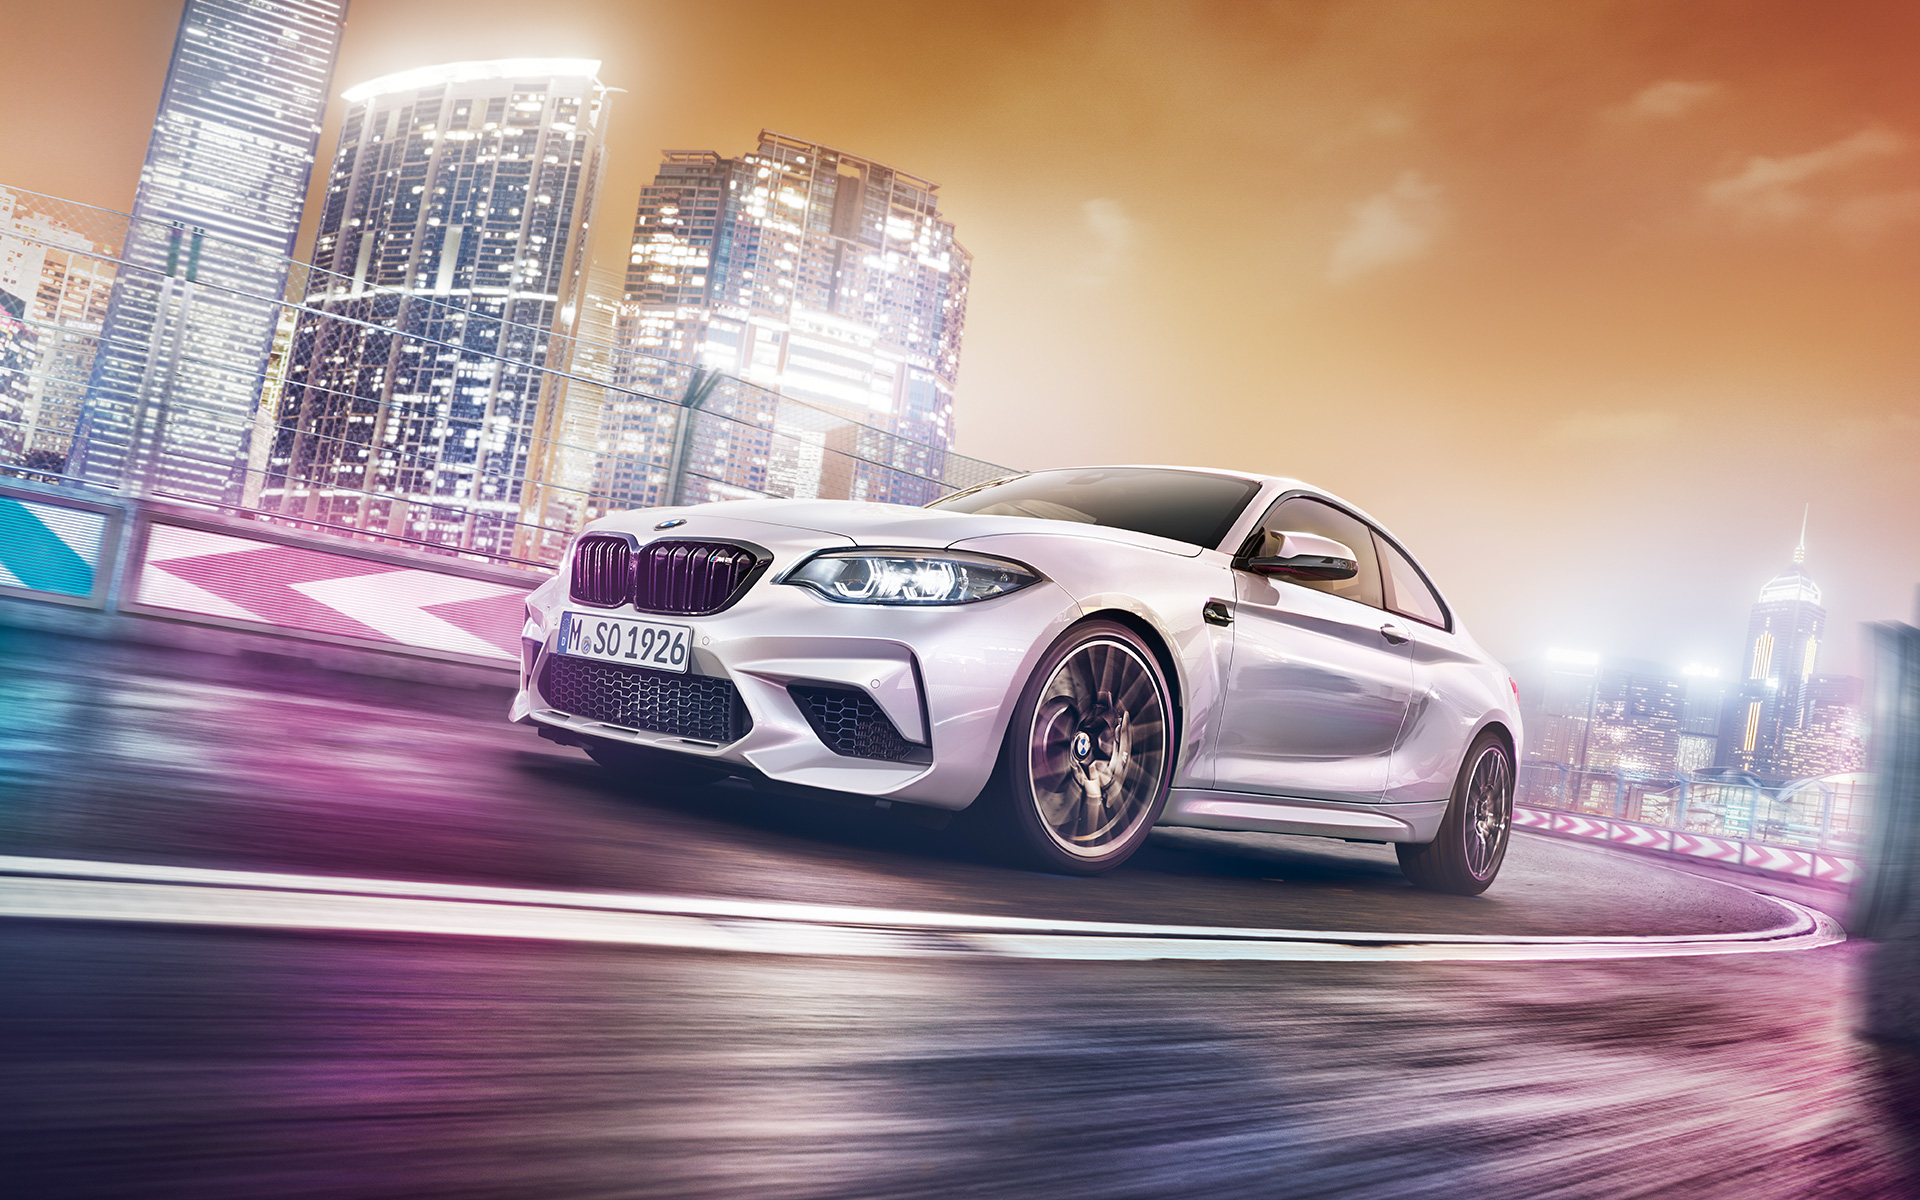 bmw-m-series-m2-exterior-intro-02-large.jpg.asset.1522830774275 (1)